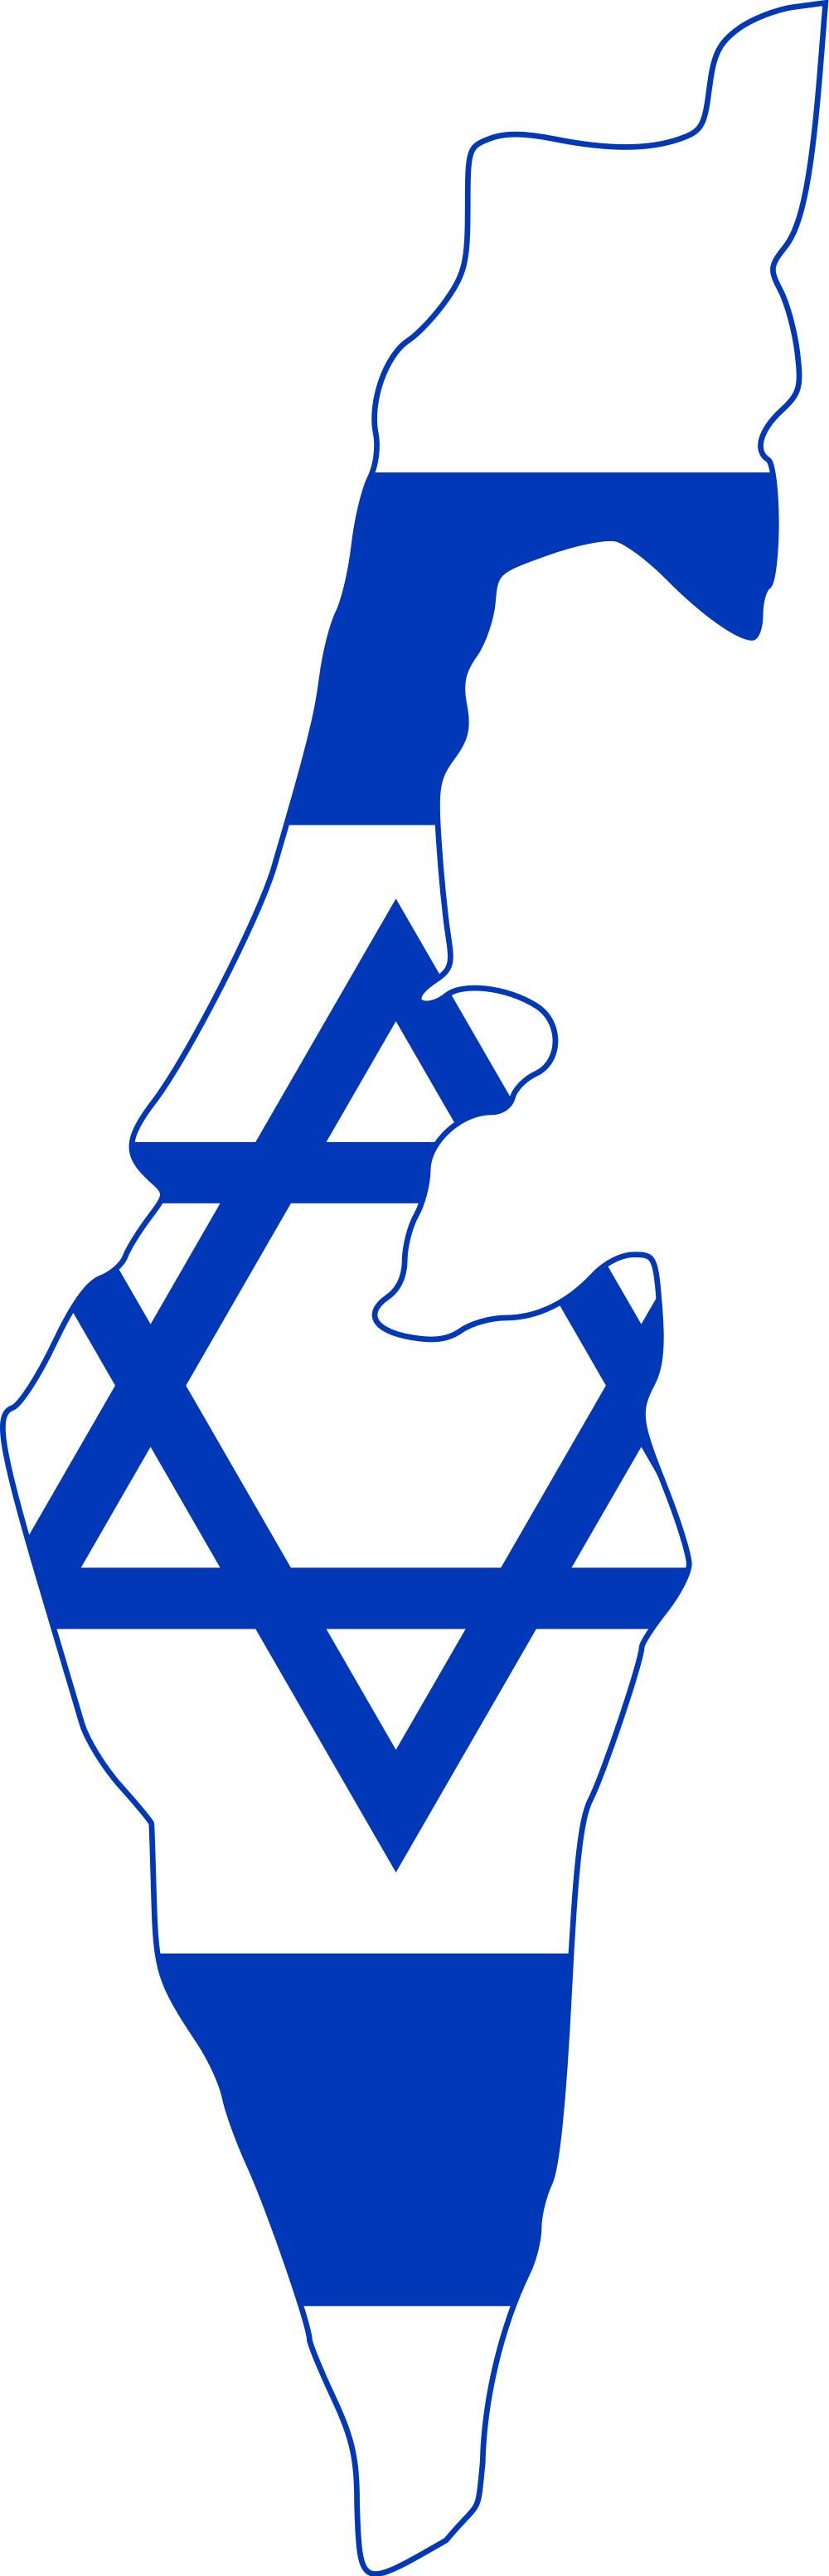 File:Israel Flag.